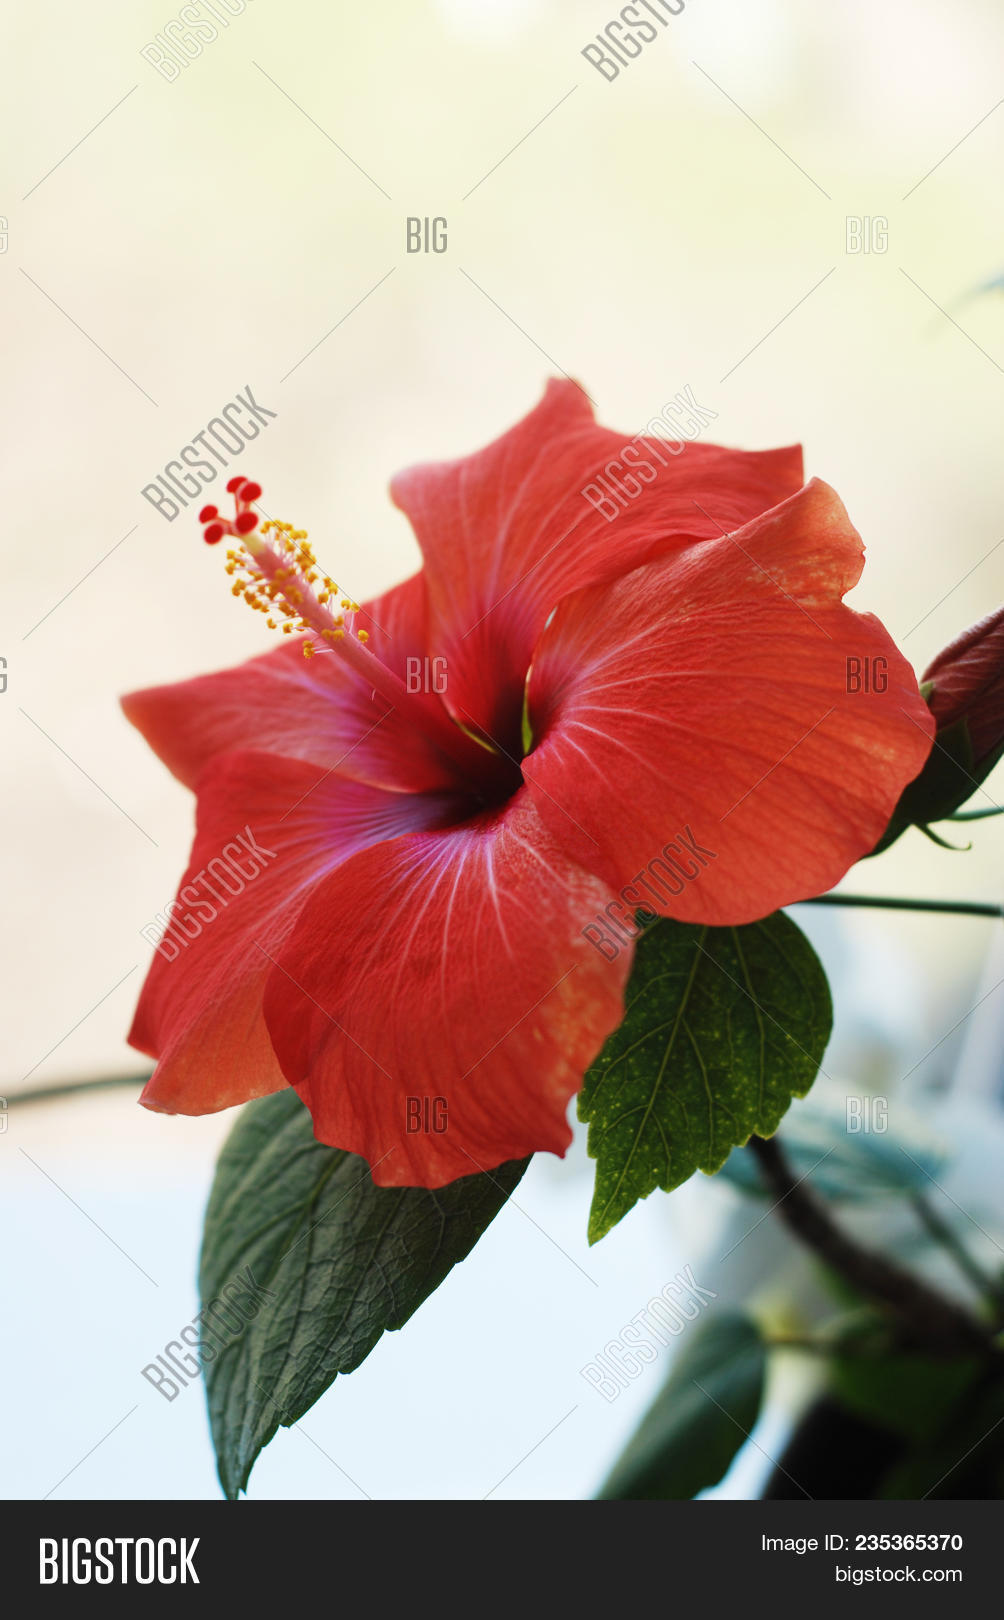 Red hibiscus flower image photo free trial bigstock red hibiscus flower or chinese rose china rose flower with leaves isolated on white izmirmasajfo